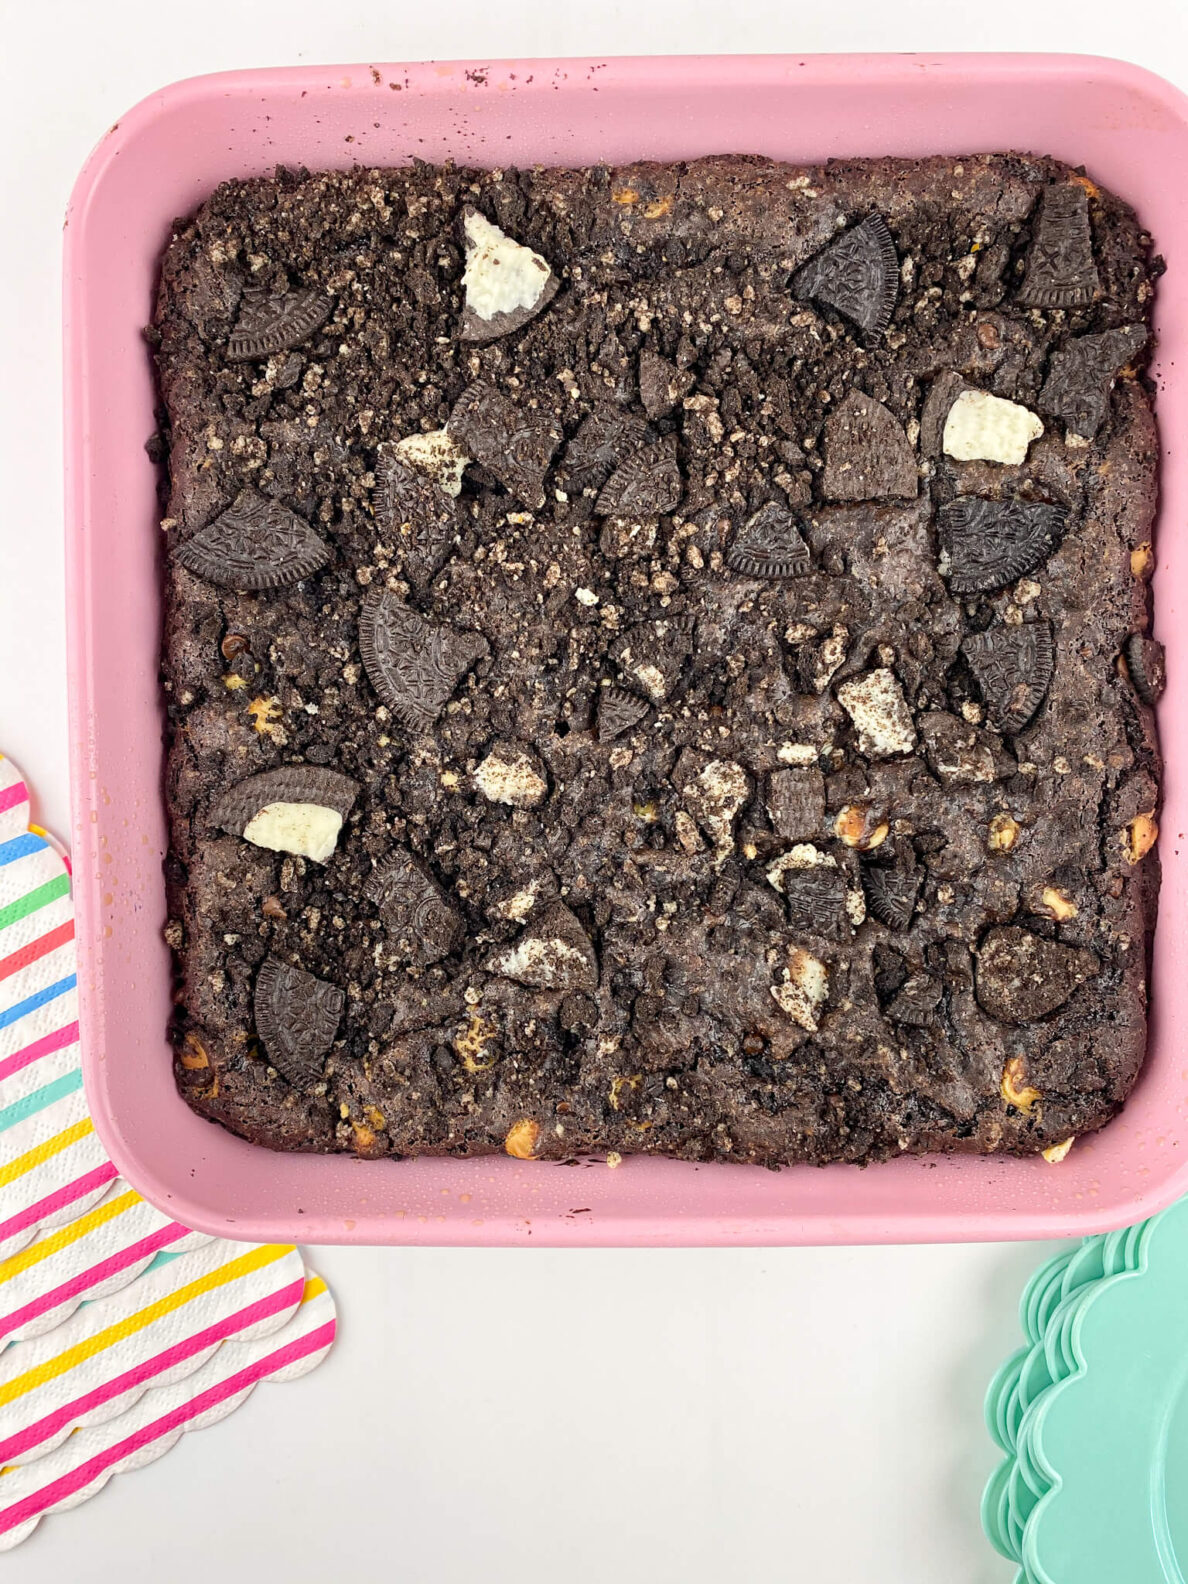 Kate's Safe and Sweet - Chocolate Sandwich Cookie Brownies in Pan